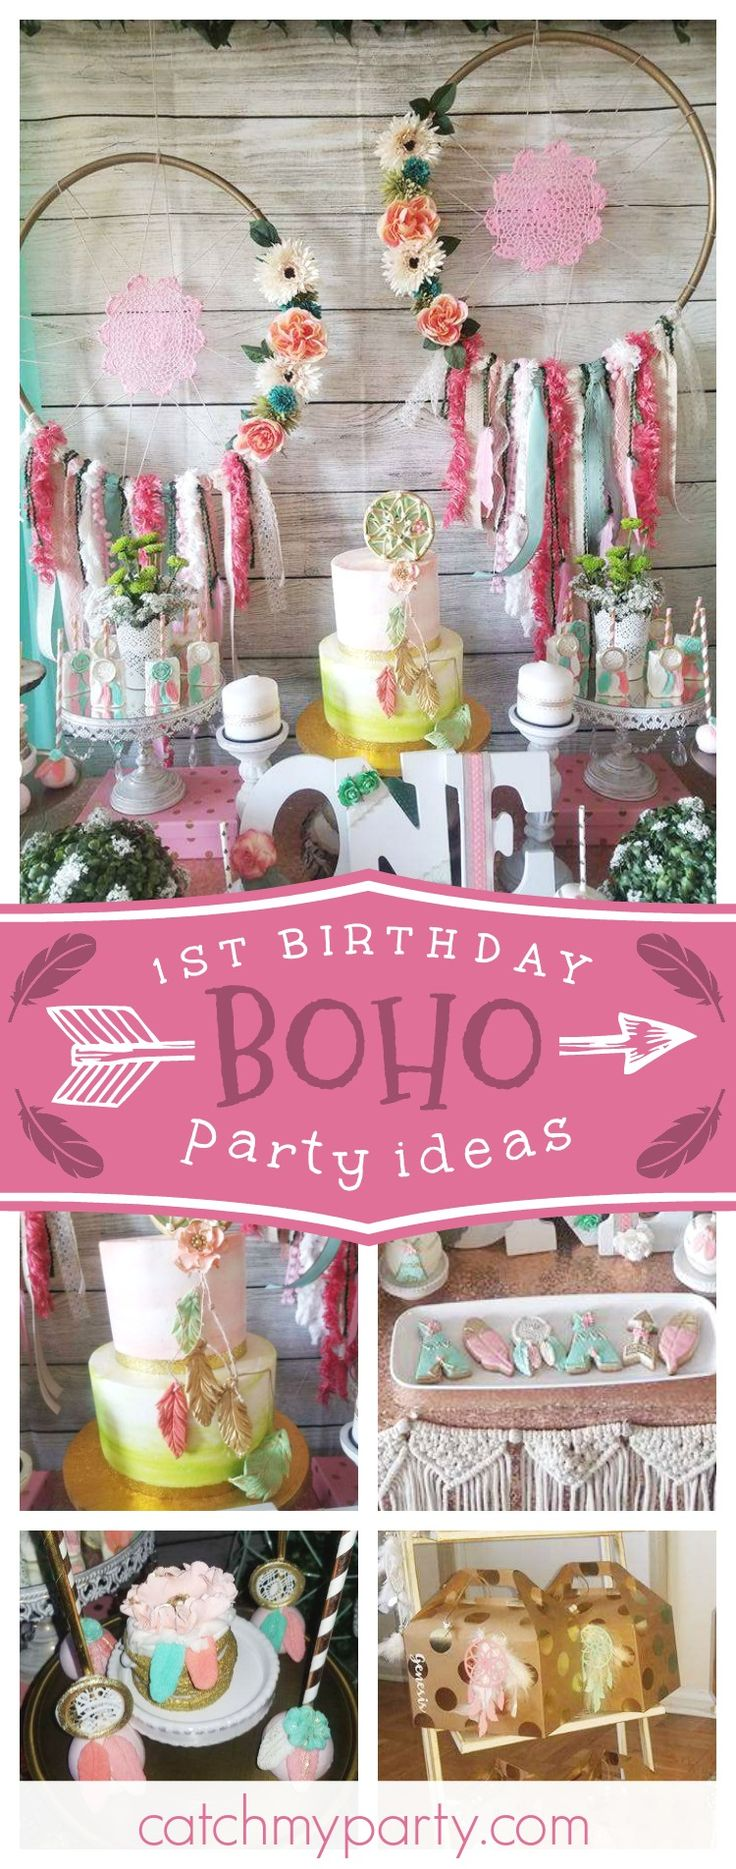 Check out this amazing Boho 1st birthday party!! The birthday cake is fabulous!! See more party ideas and share yours CatchMyParty.com #catchmyparty #boho #dreamcatcher #1stbirthday